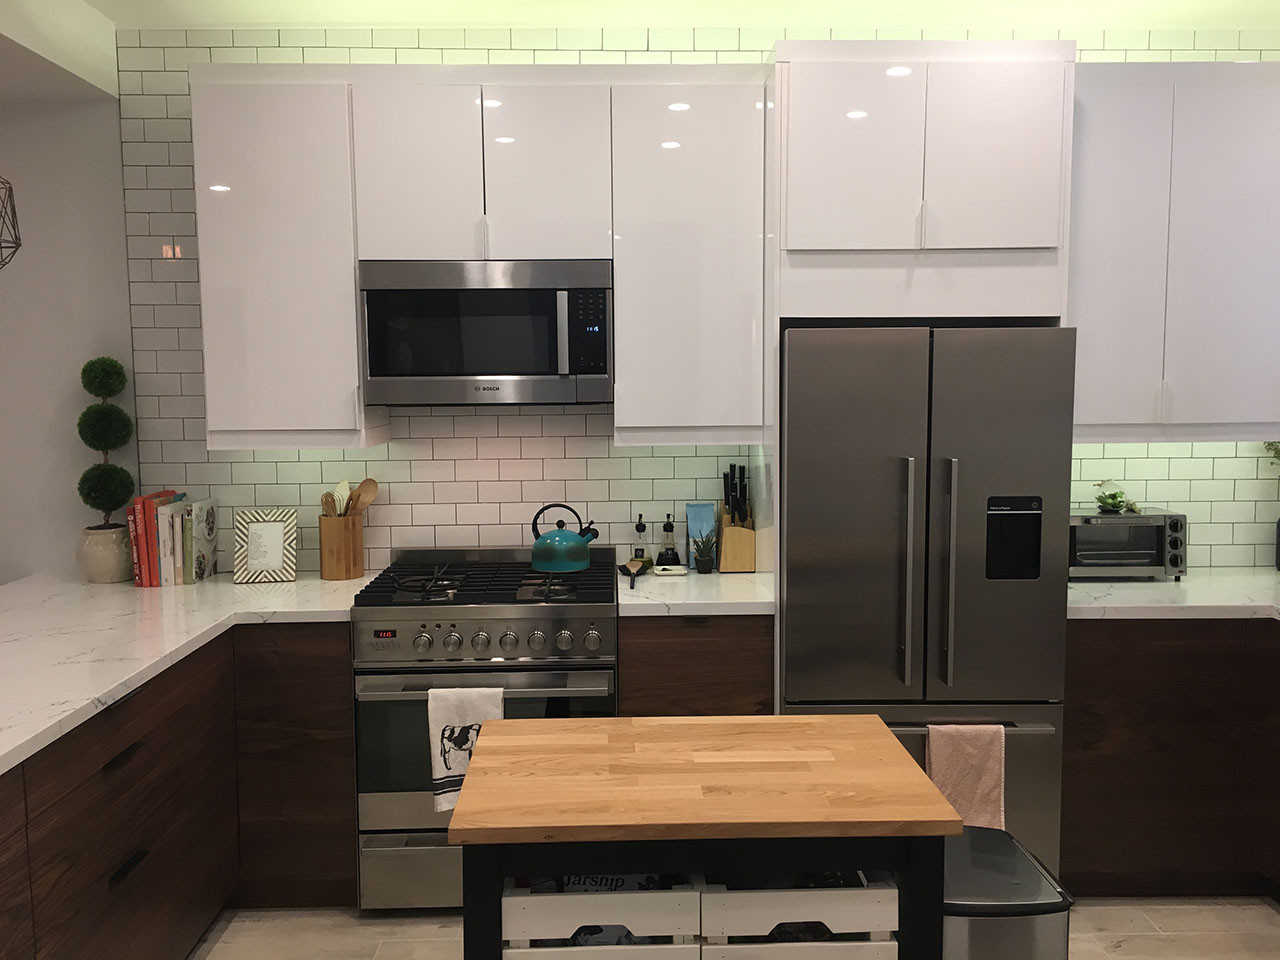 Modern Kitchen Cabinets Ikea  A Small IKEA Kitchen Let's Get Vertical Vertical